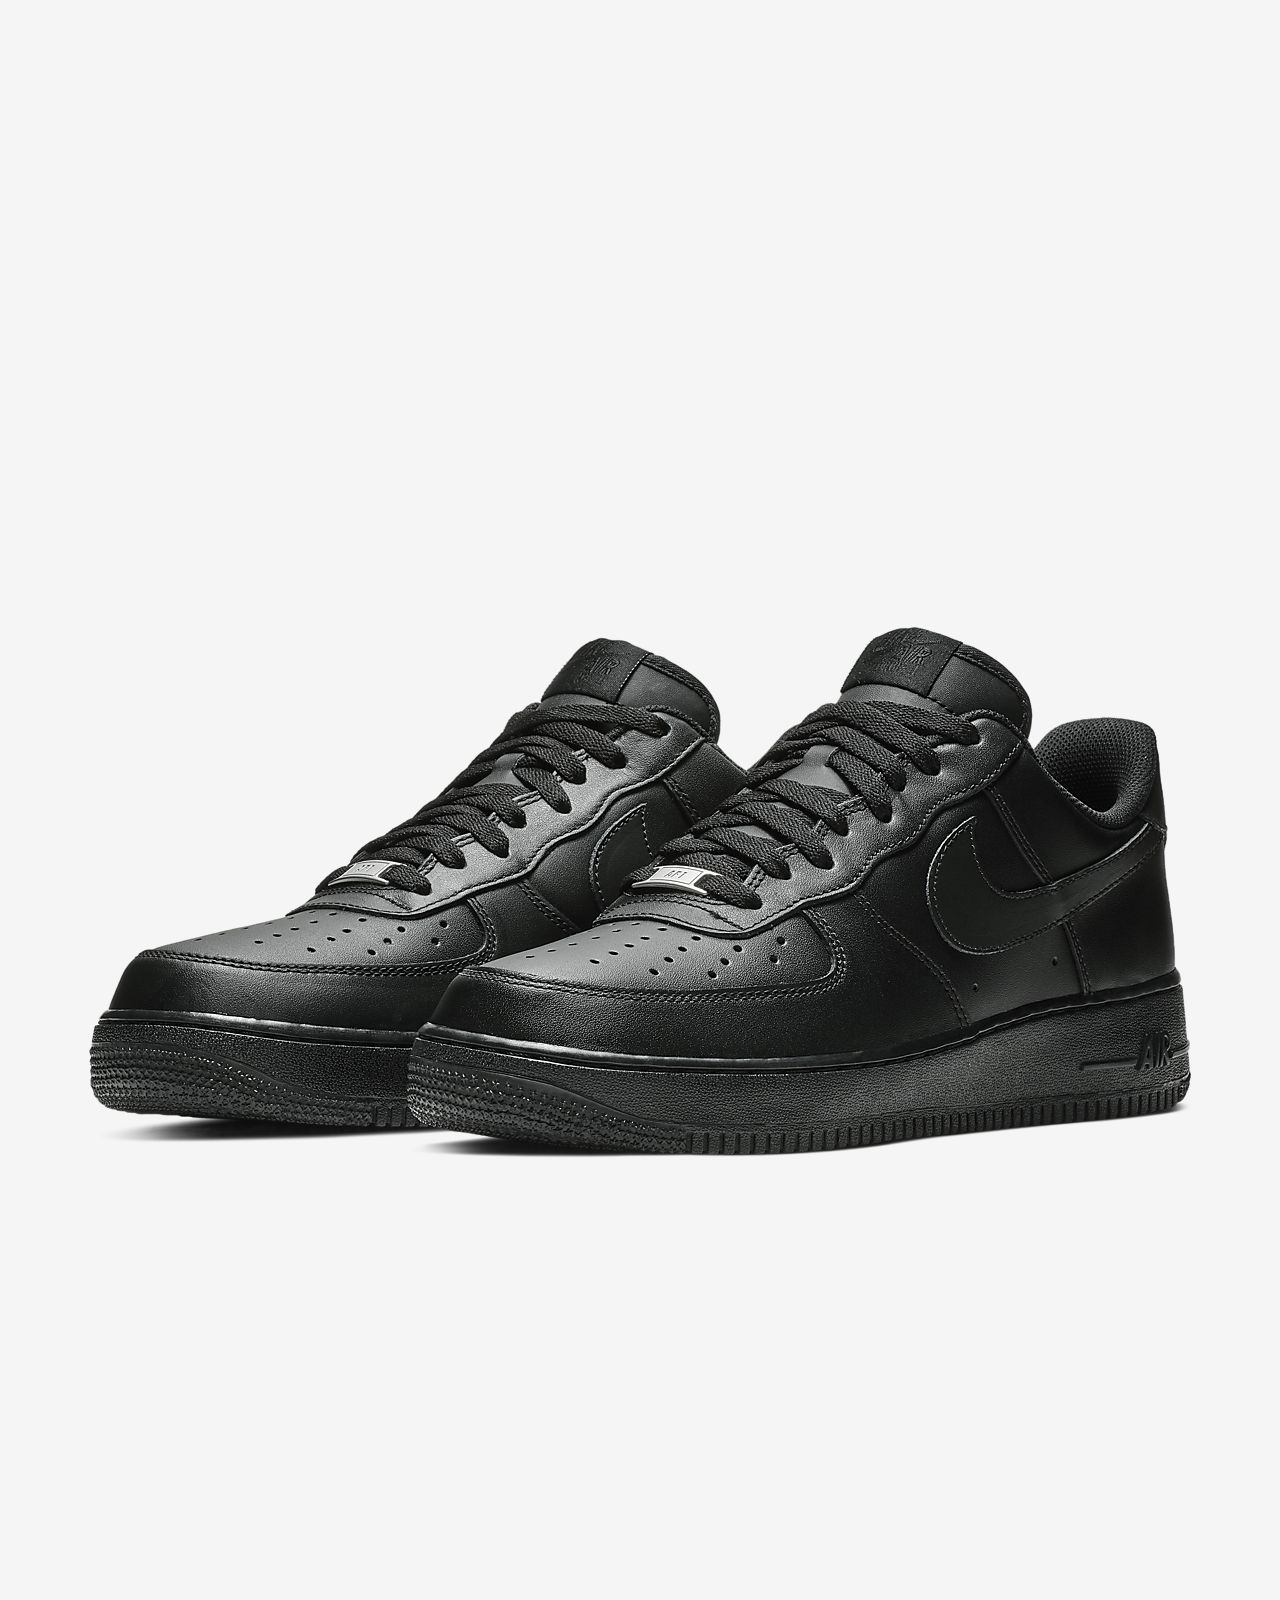 Nike Air Force 1 '07 Triple Black Men's Shoe